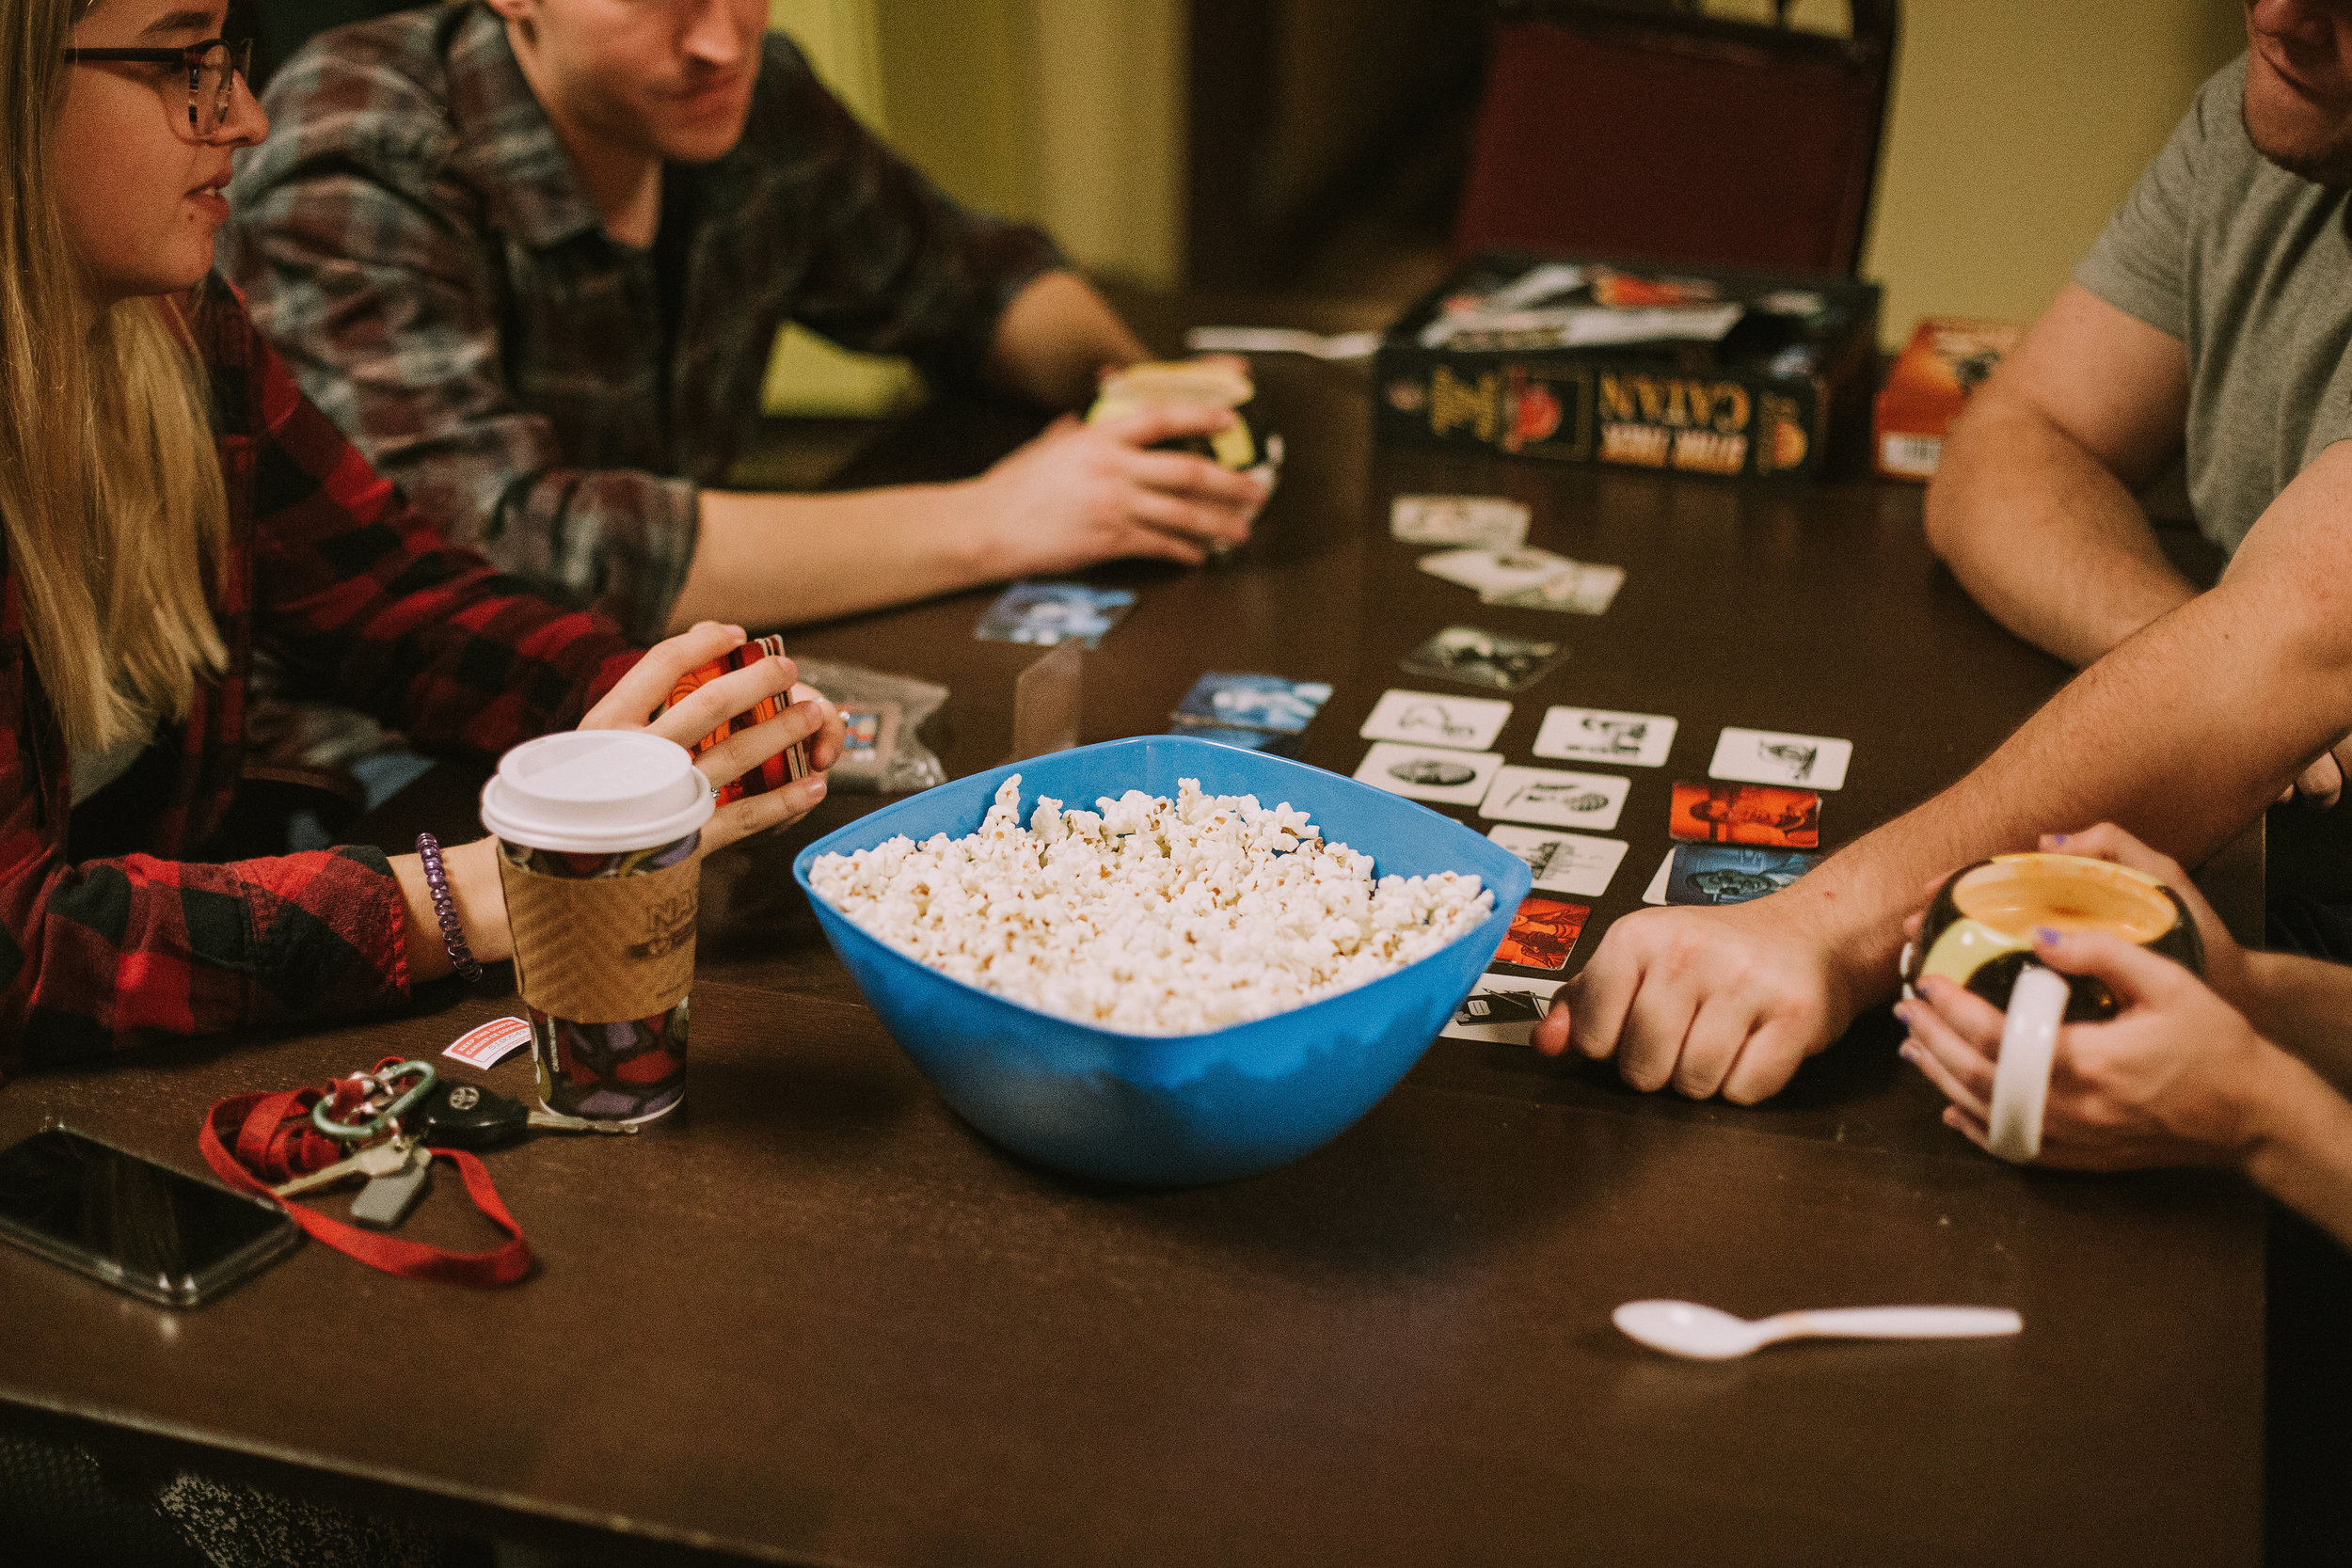 ENJOY A NIGHT OF LAUGHTER, LATTES, AND BOARDGAMES WITH FAMILY AND FRIENDS! -